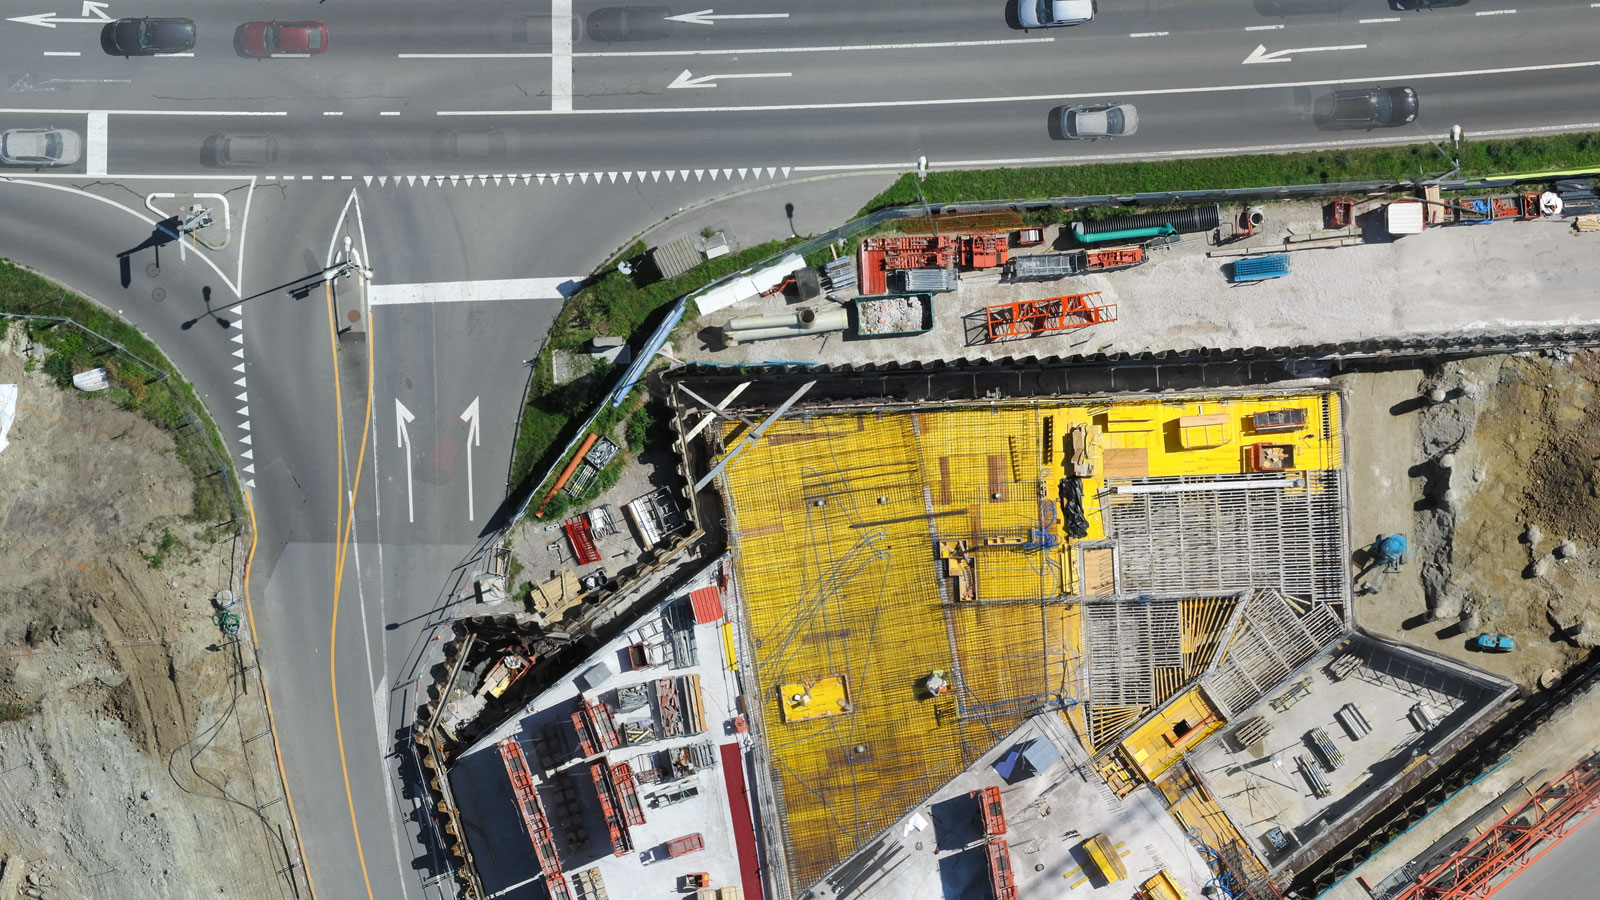 Construction site monitoring with the Crane Camera